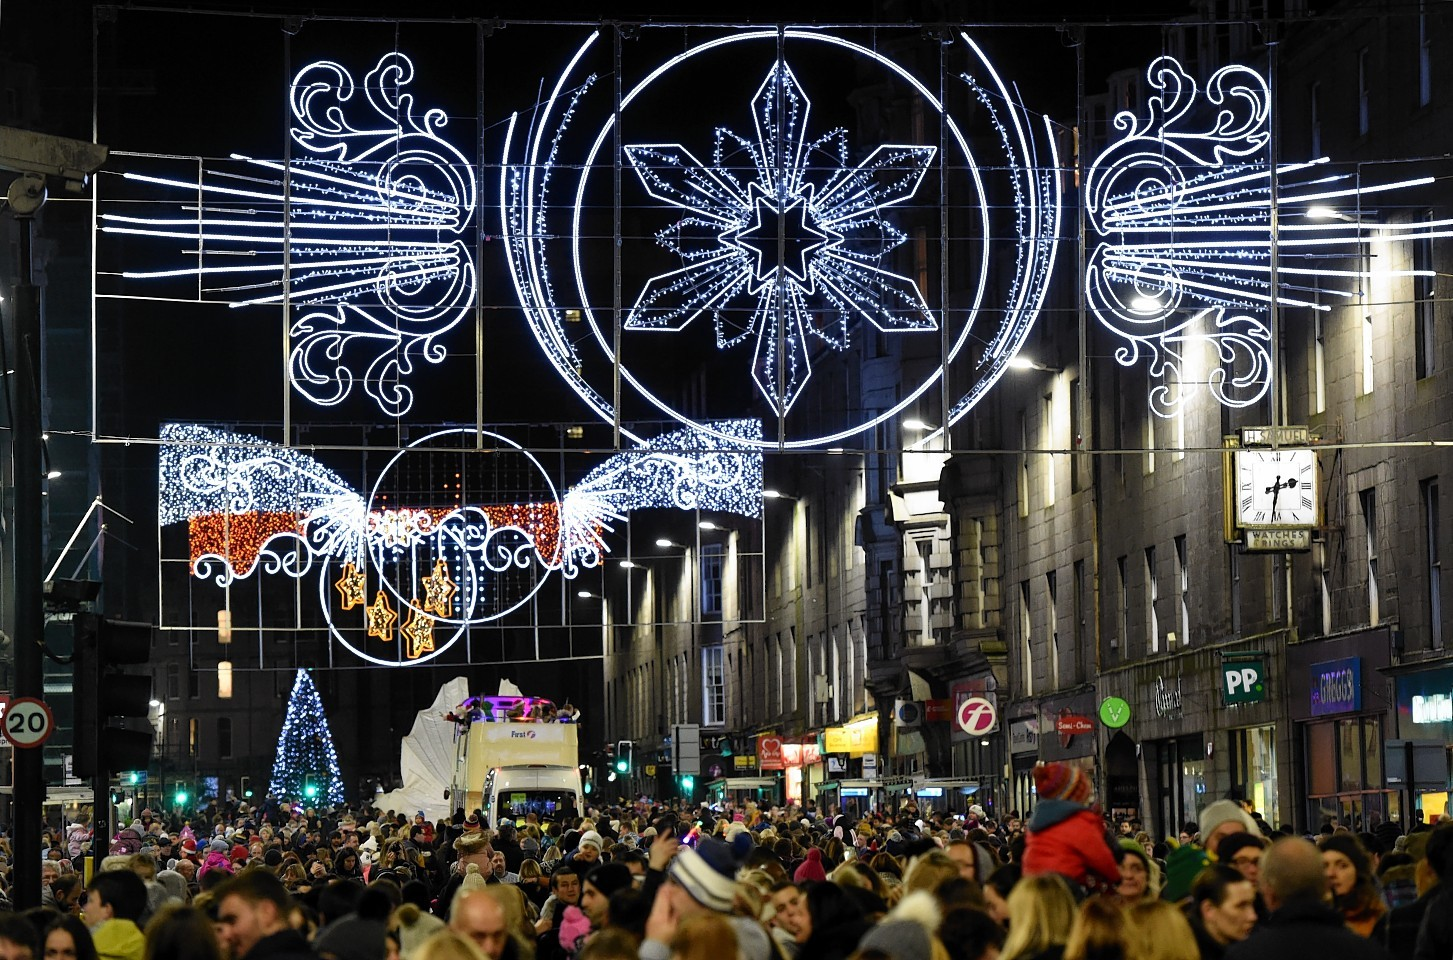 Aberdeen Christmas lights switch on parade down Union Street.